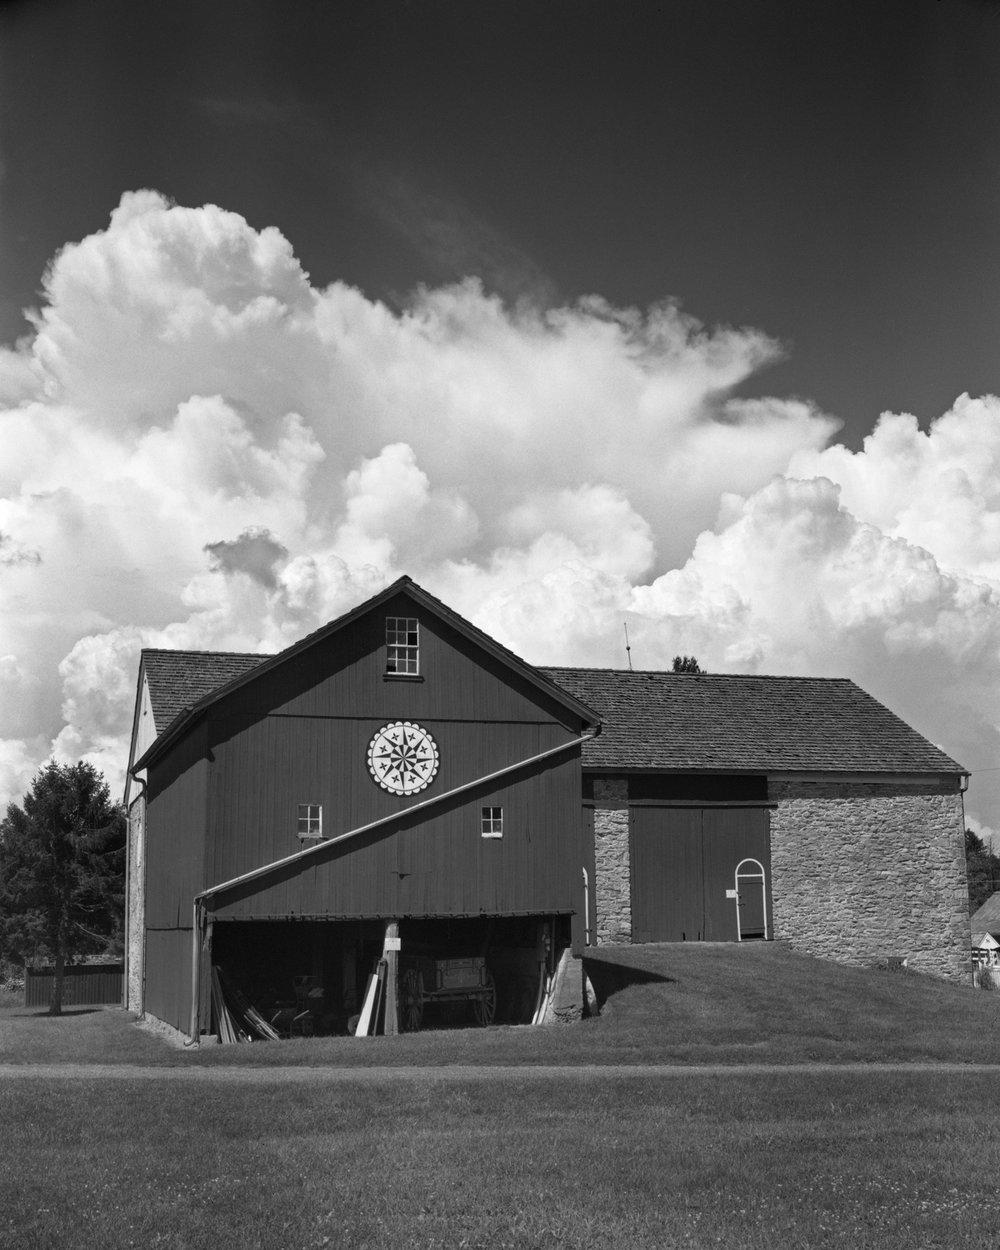 2018-09-03_PA_German_Heritage_Center_Intrepid_4x5_120mm_Symmar_HP5_400_at_400_pyrocat_hd_1_1_100_barn_and_clouds_004.jpg